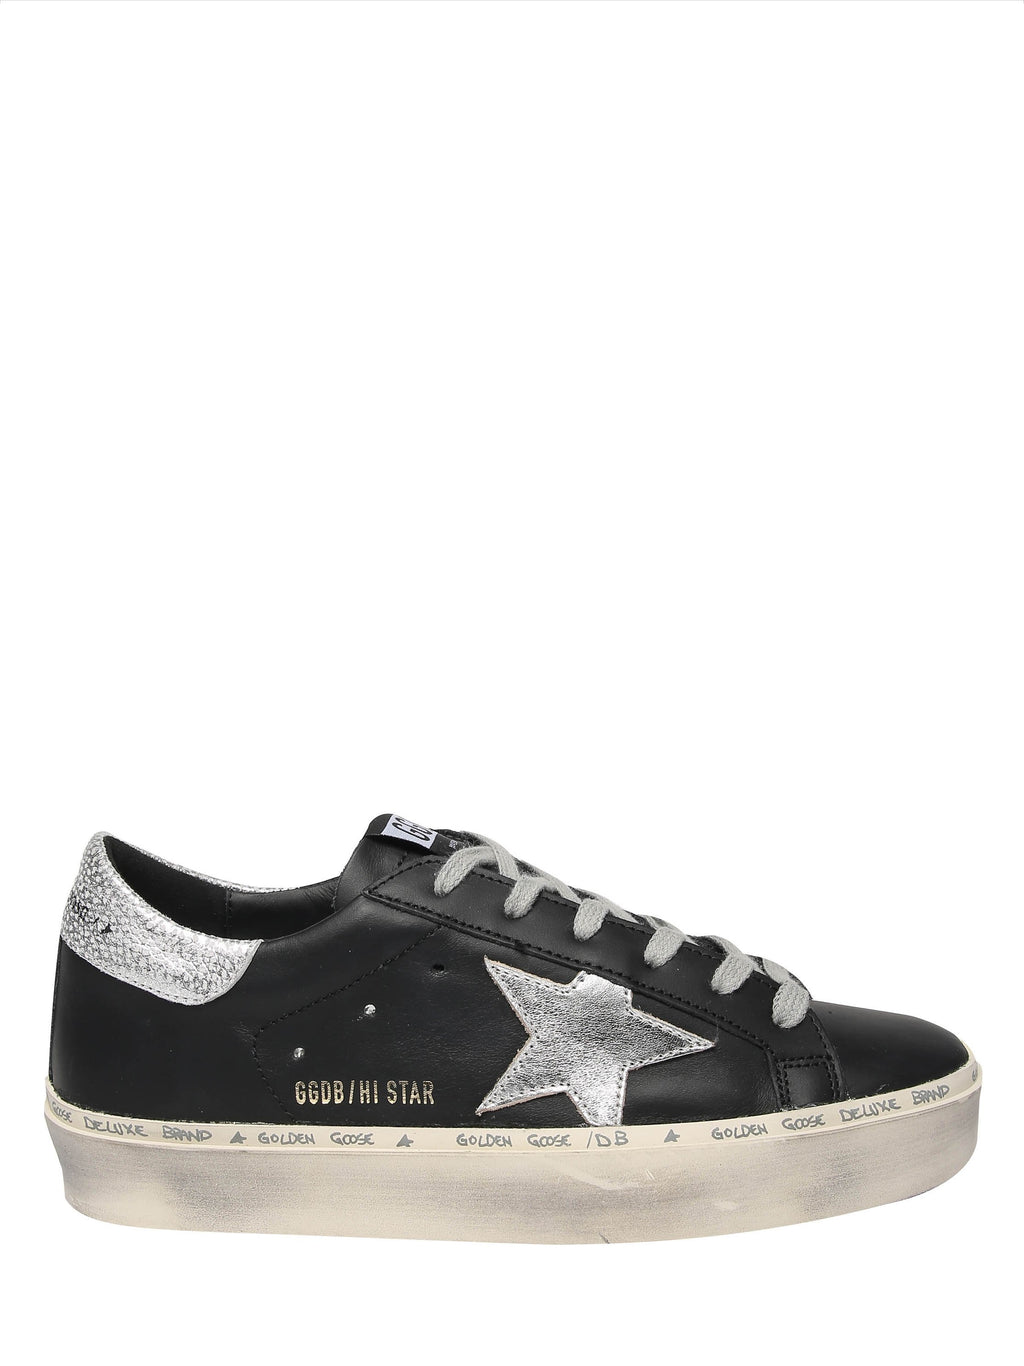 Hi Star sneakers